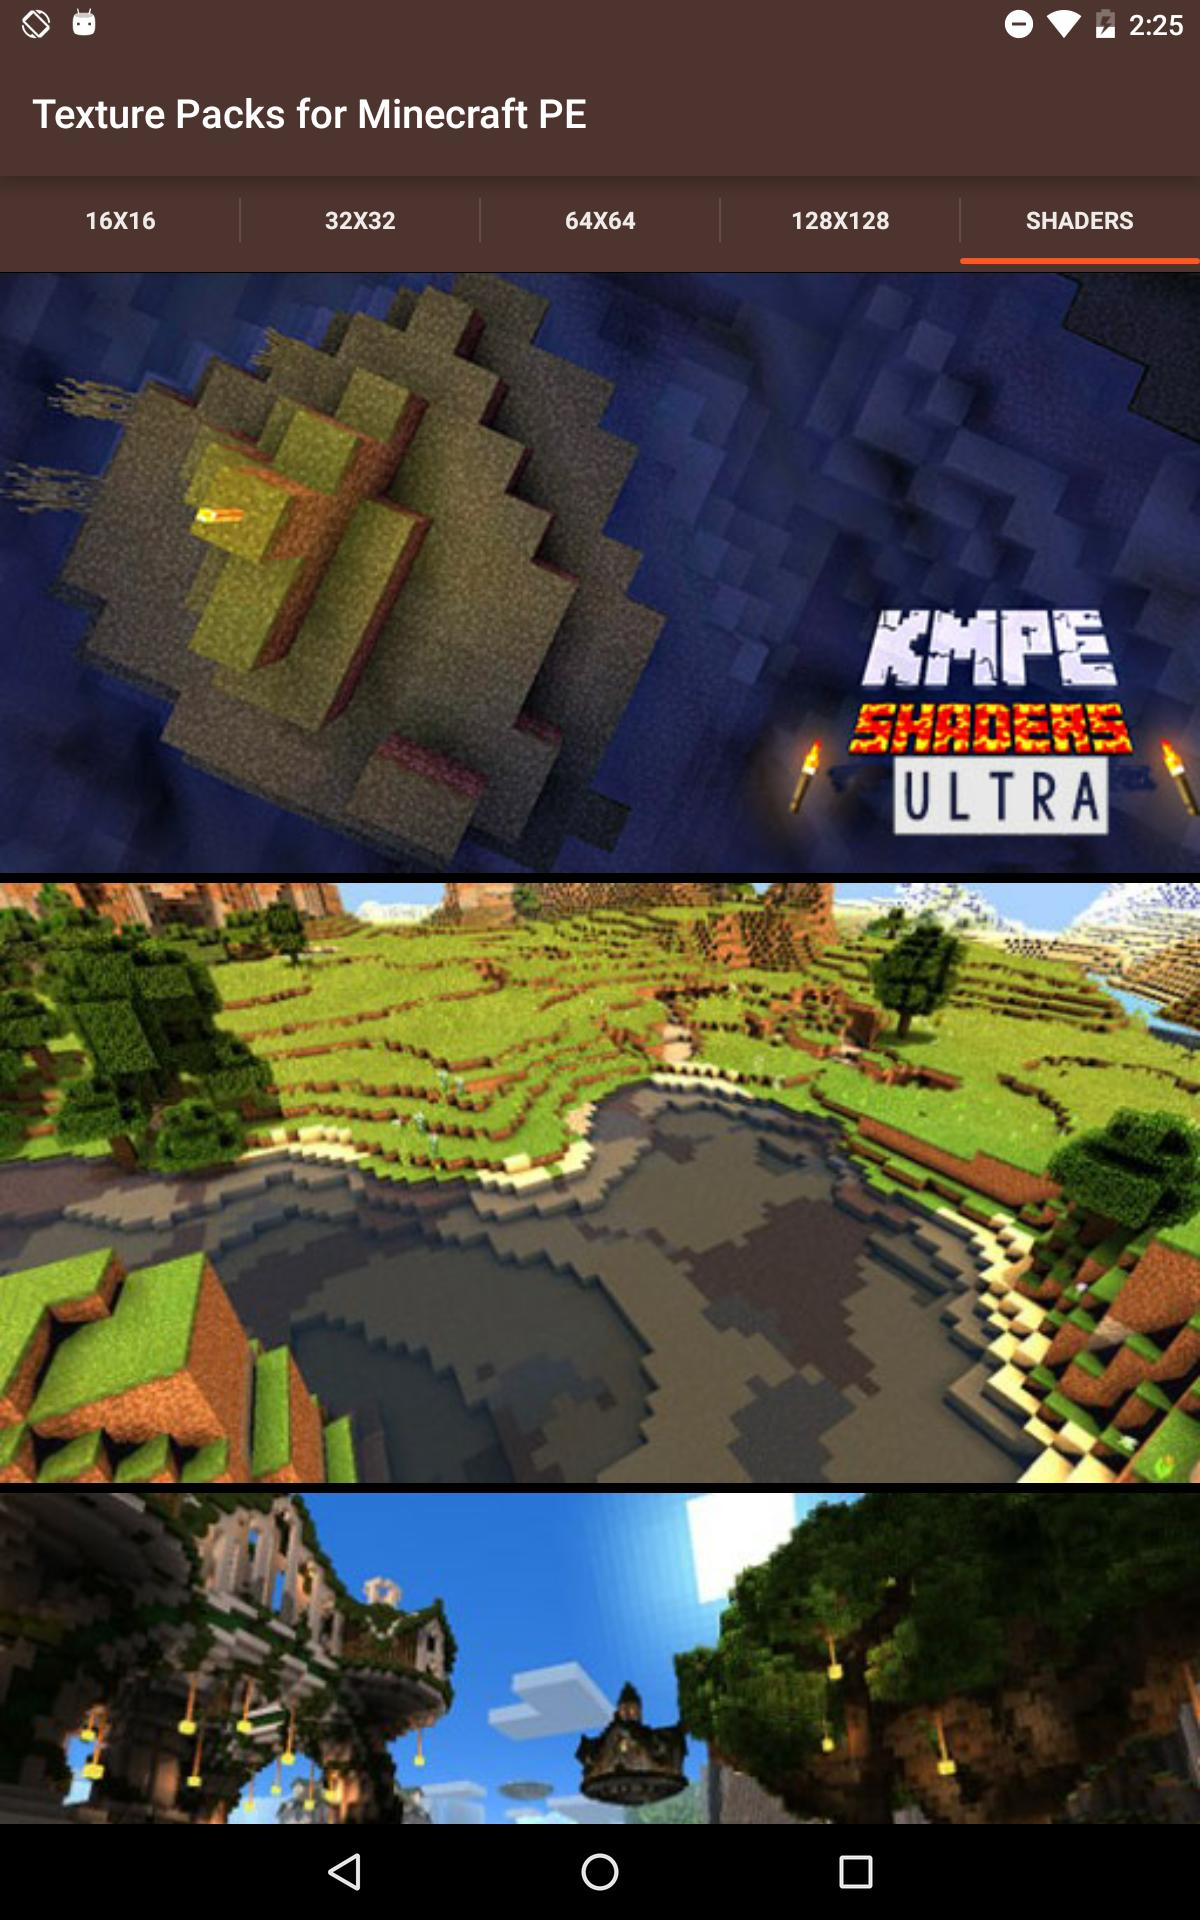 Texture Pack for Minecraft PE for Android - APK Download